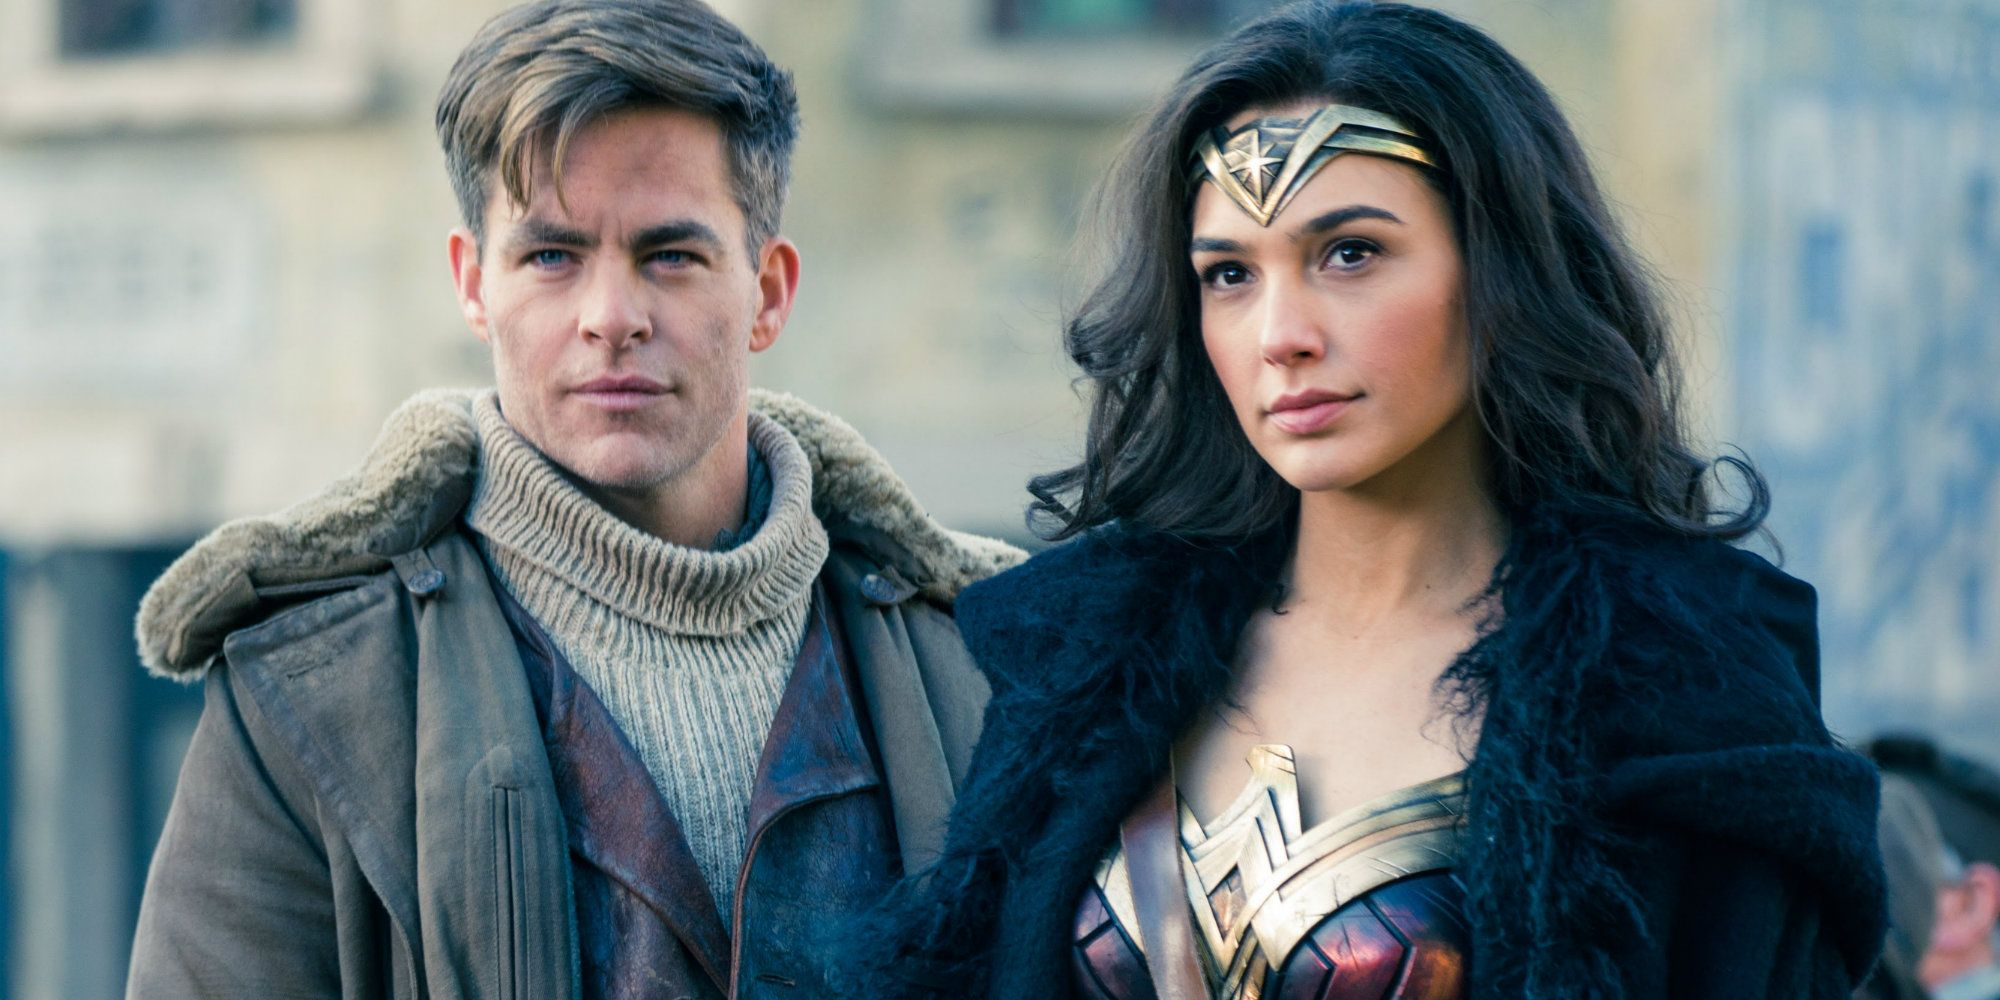 Gal Gadot Shares Wonder Woman Blooper Reel Clip